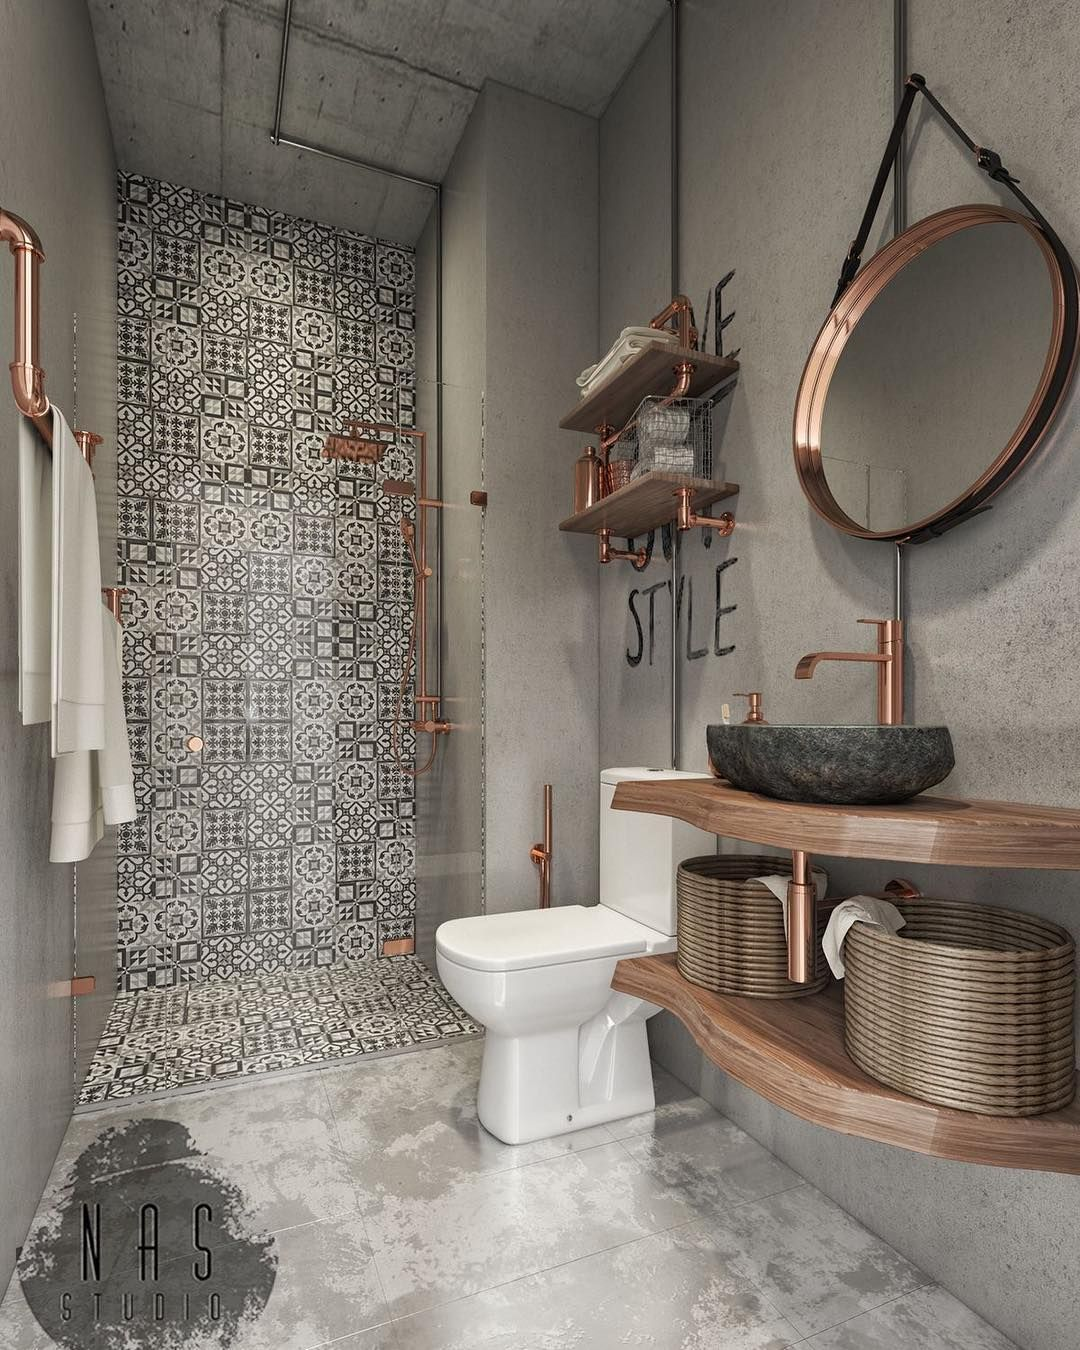 Frameless Shower Door Metallic Accents Project By NAS Studio - Metallic bathroom tiles